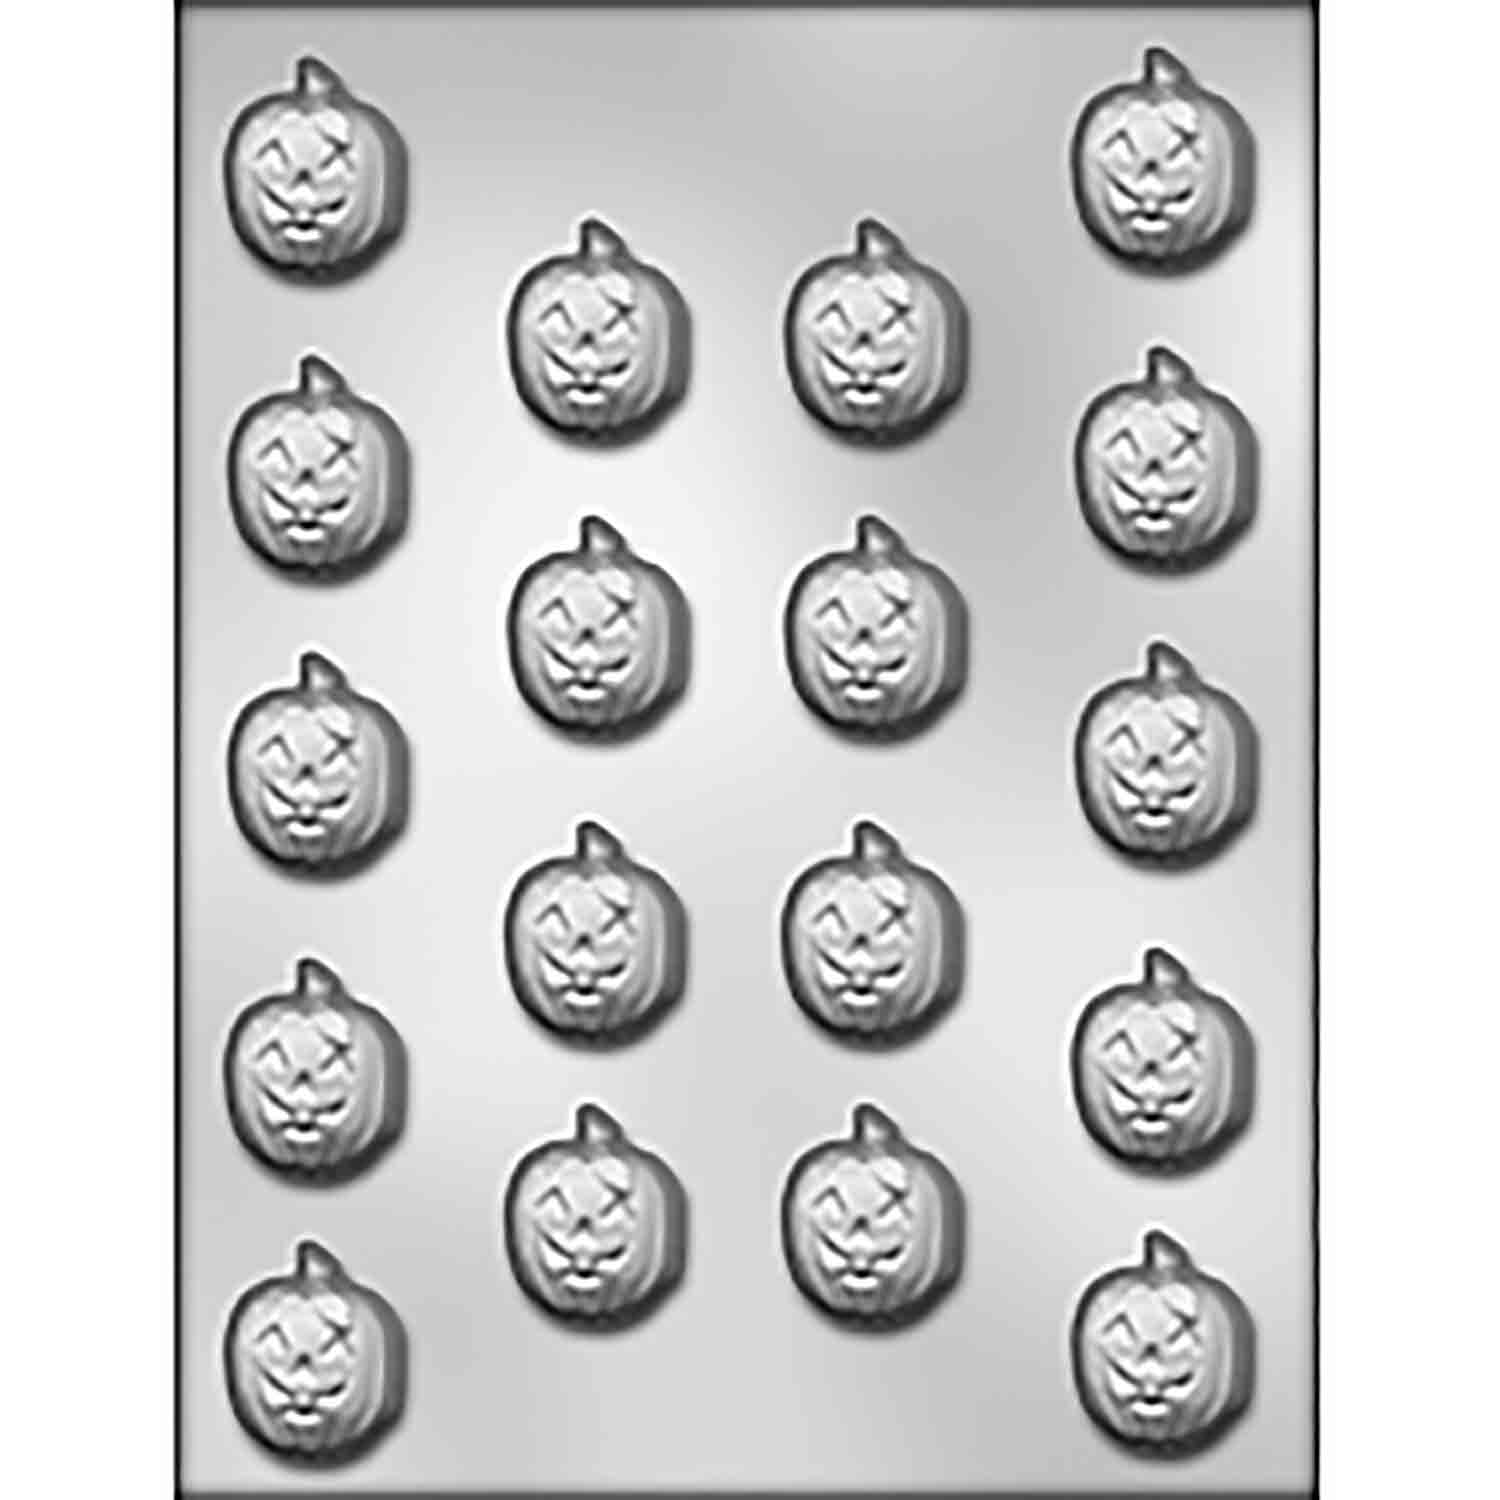 Jack-O-Lantern Chocolate Candy Mold